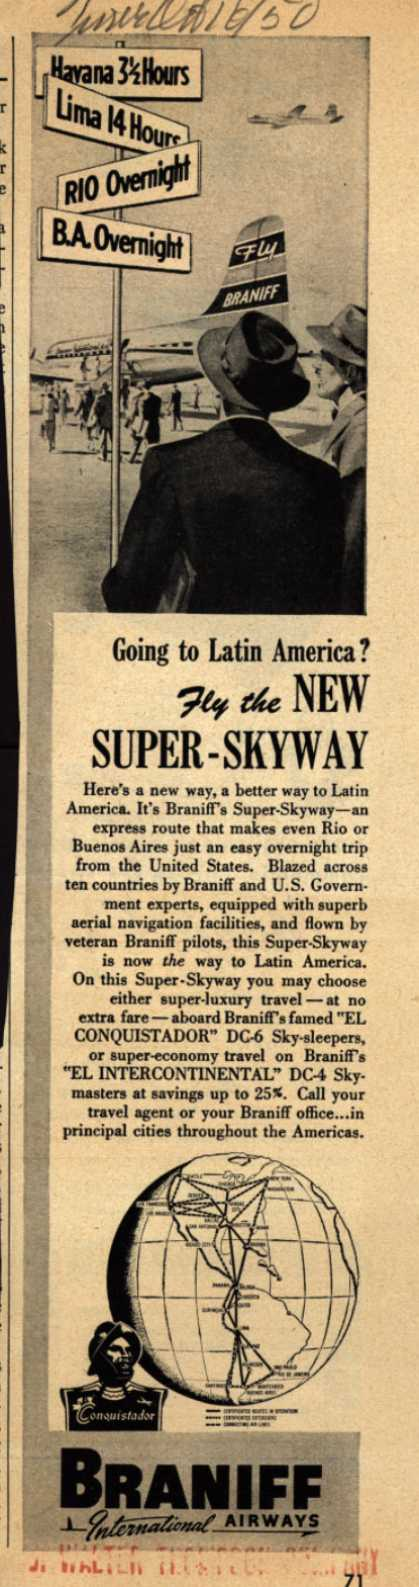 Braniff International Airway's Latin America – Going to Latin America? Fly the NEW SUPER-SKYWAY (1950)